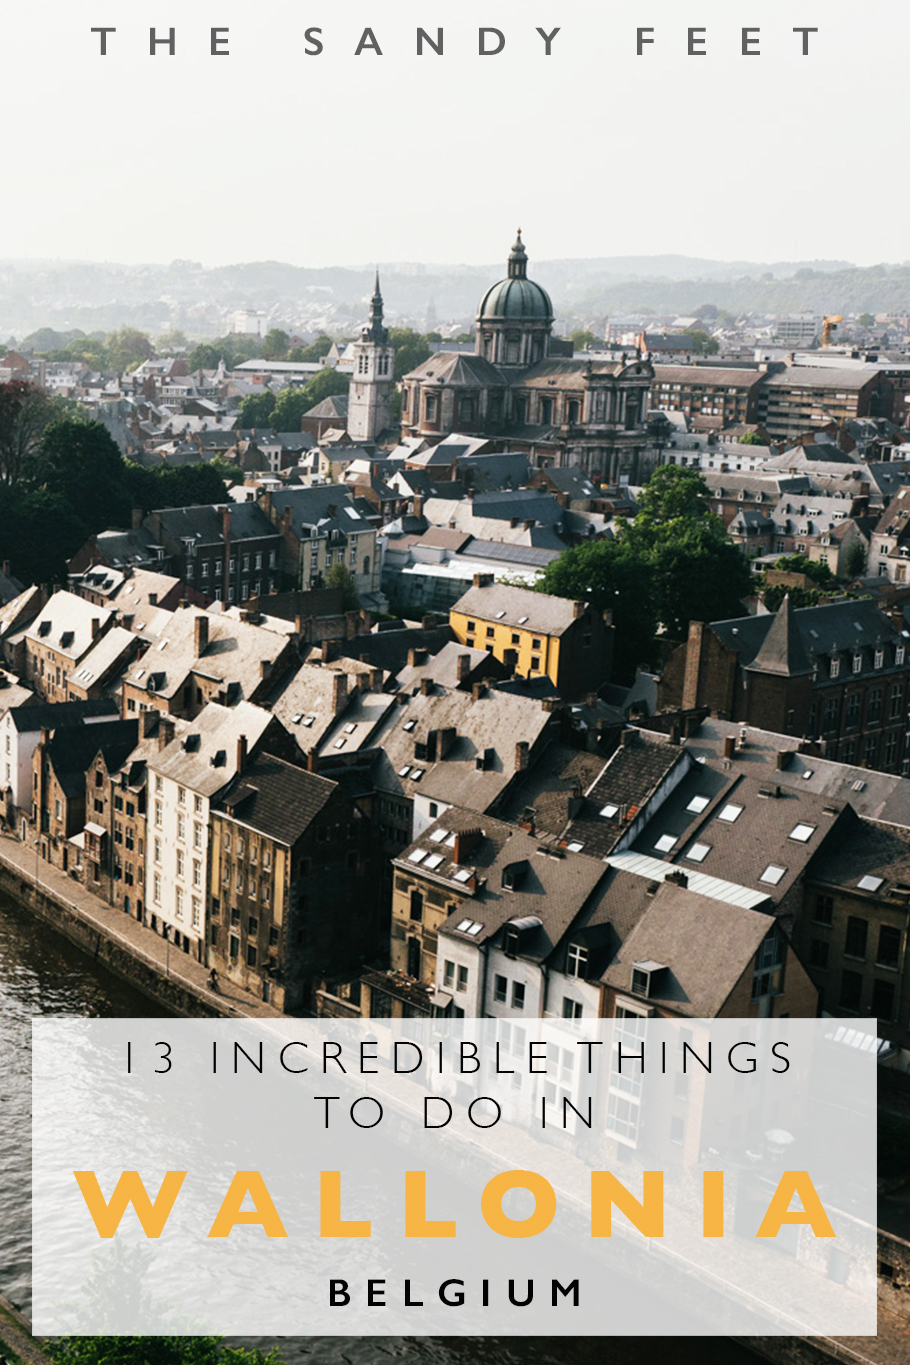 Visiting Belgium? Look past just Brussels and Bruges and head south to the country's lush Ardenne, it's historical towns, ruins and incredible food. These are the best things to do in Belgium's Wallonia Region.